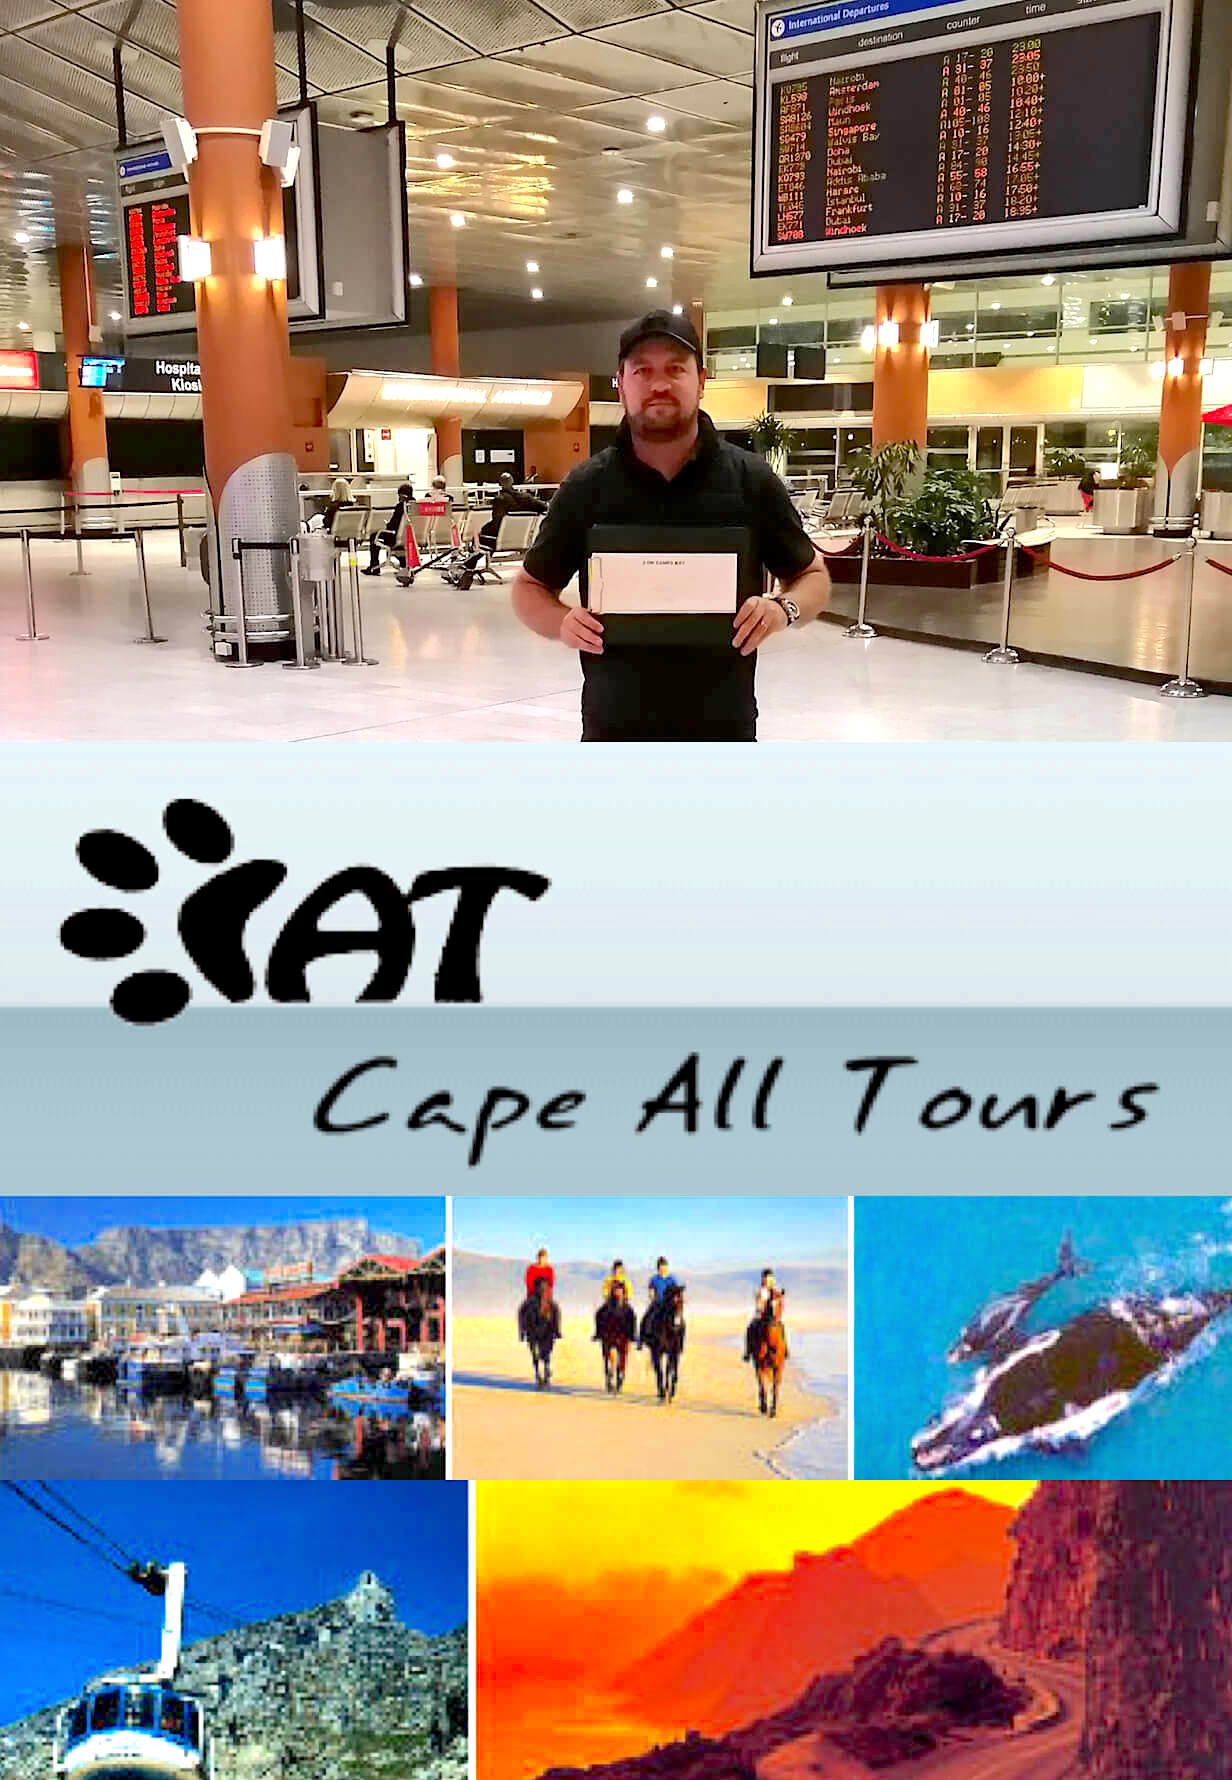 3 On Camps Bay - Cape All Tours Transfers